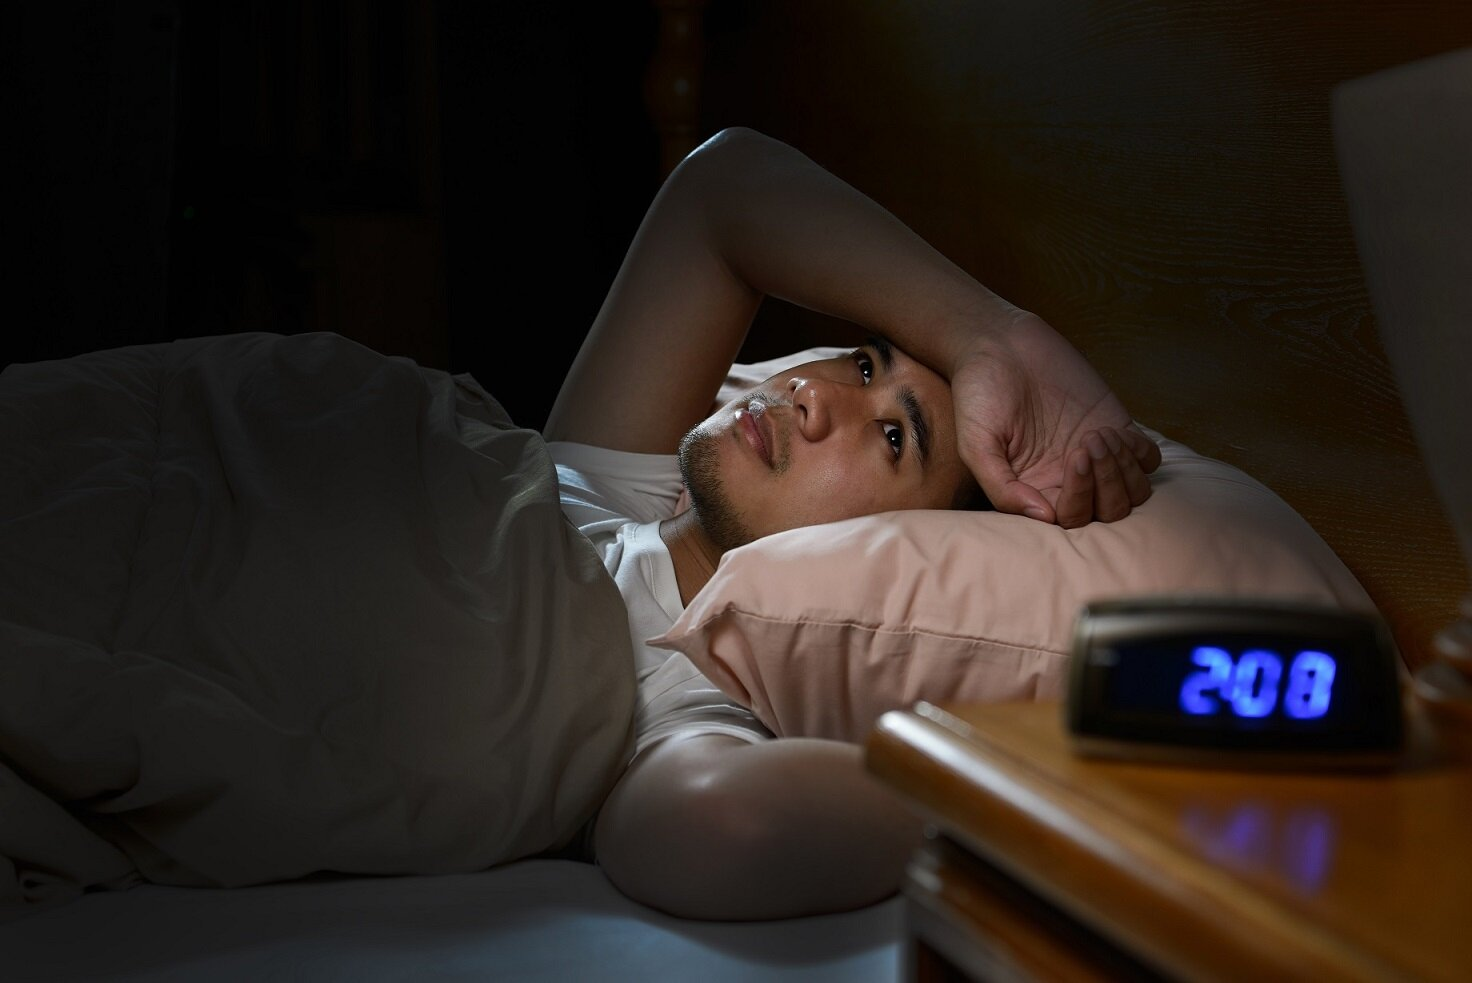 Insomniacs may be getting more sleep than they think